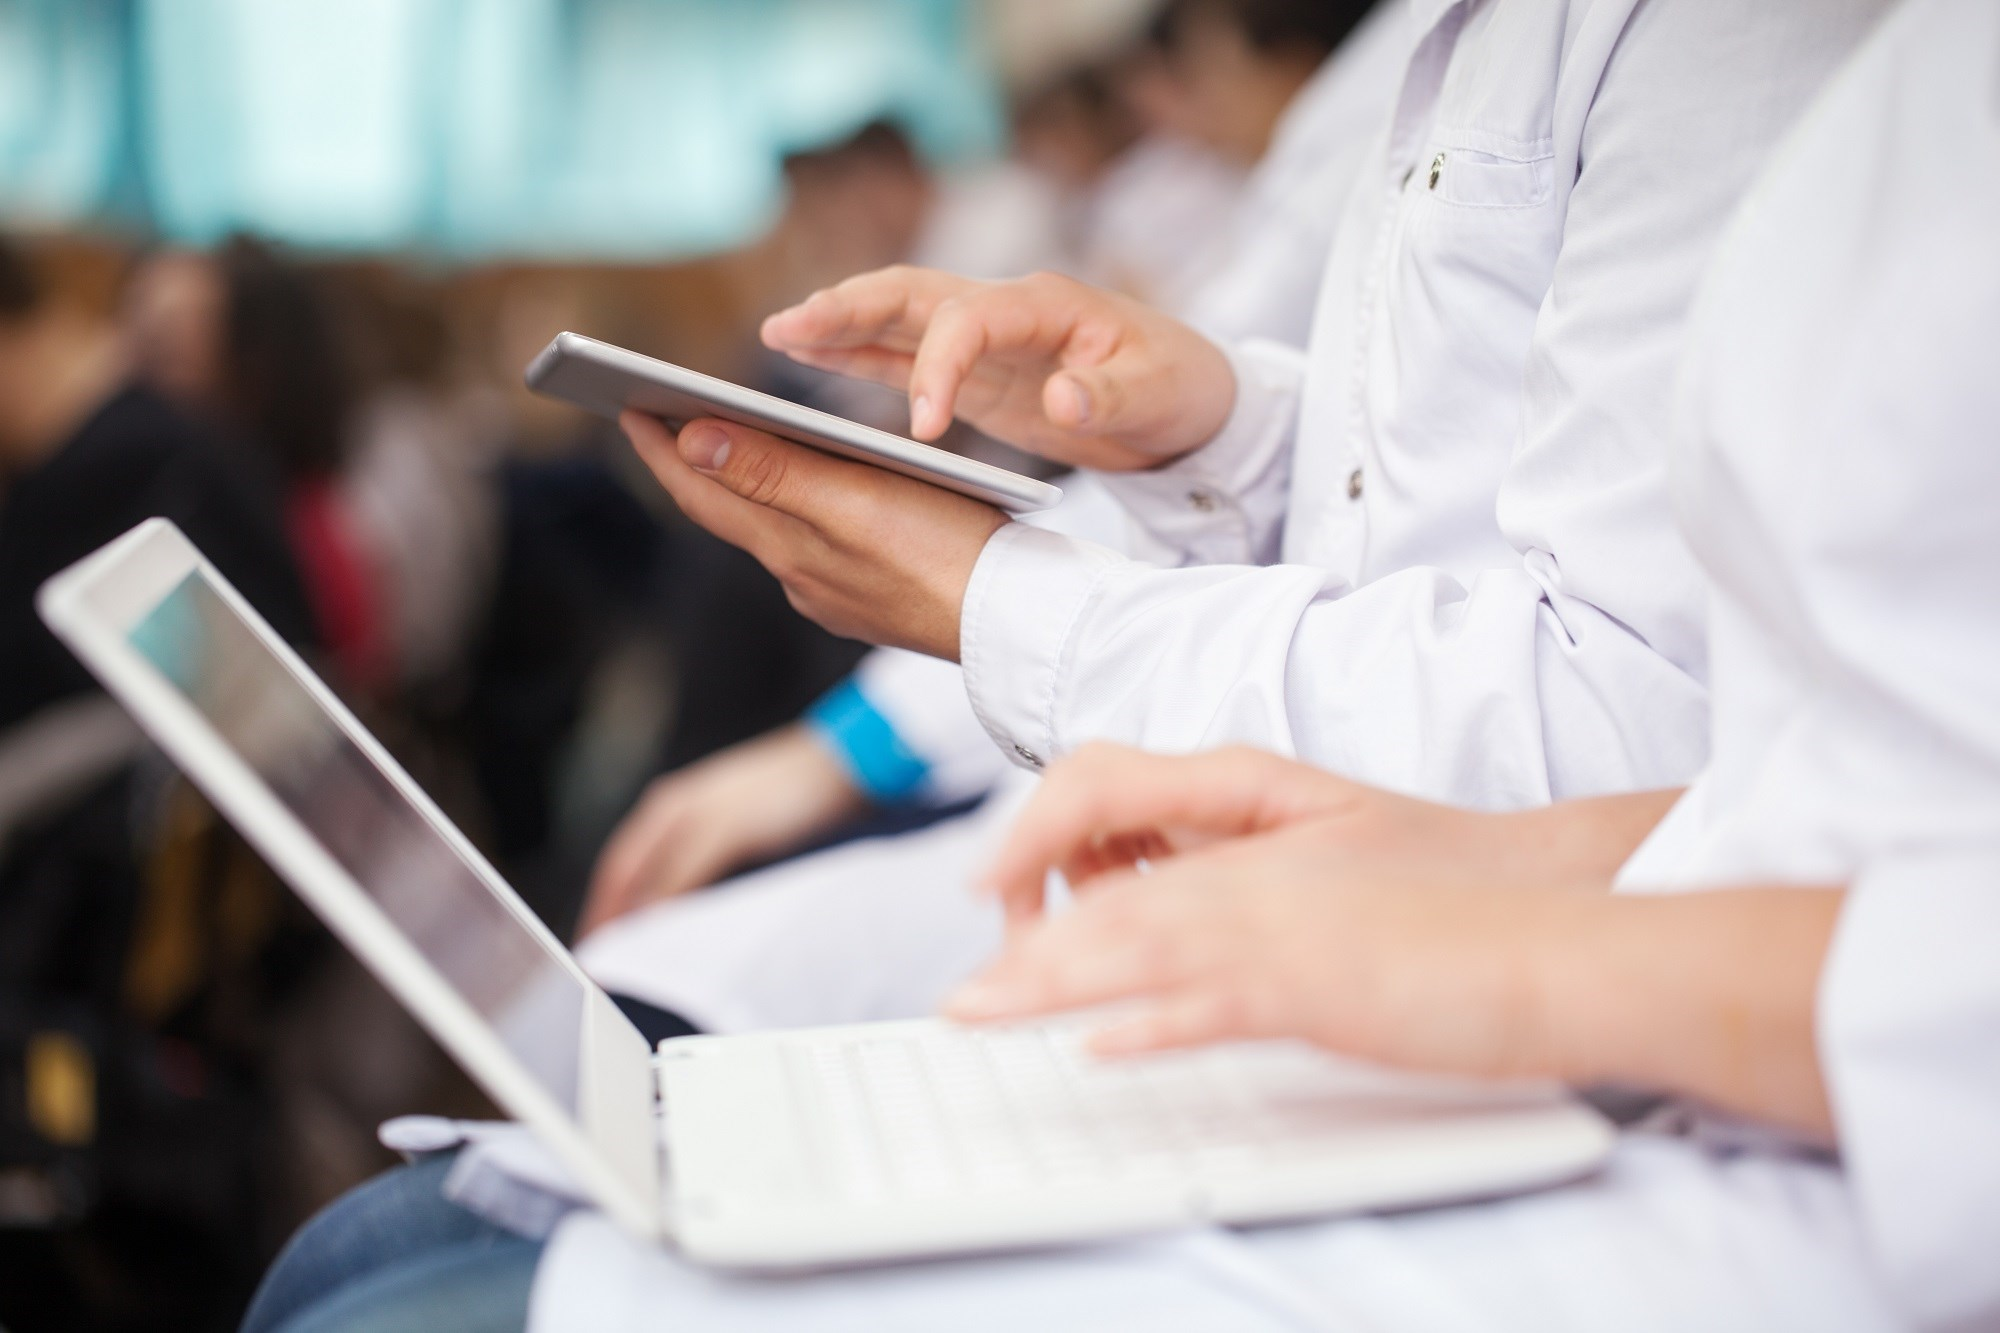 Reducing the number of computers on wheels in a surgical intensive care unit can reduce barriers to communication during patient presentations.